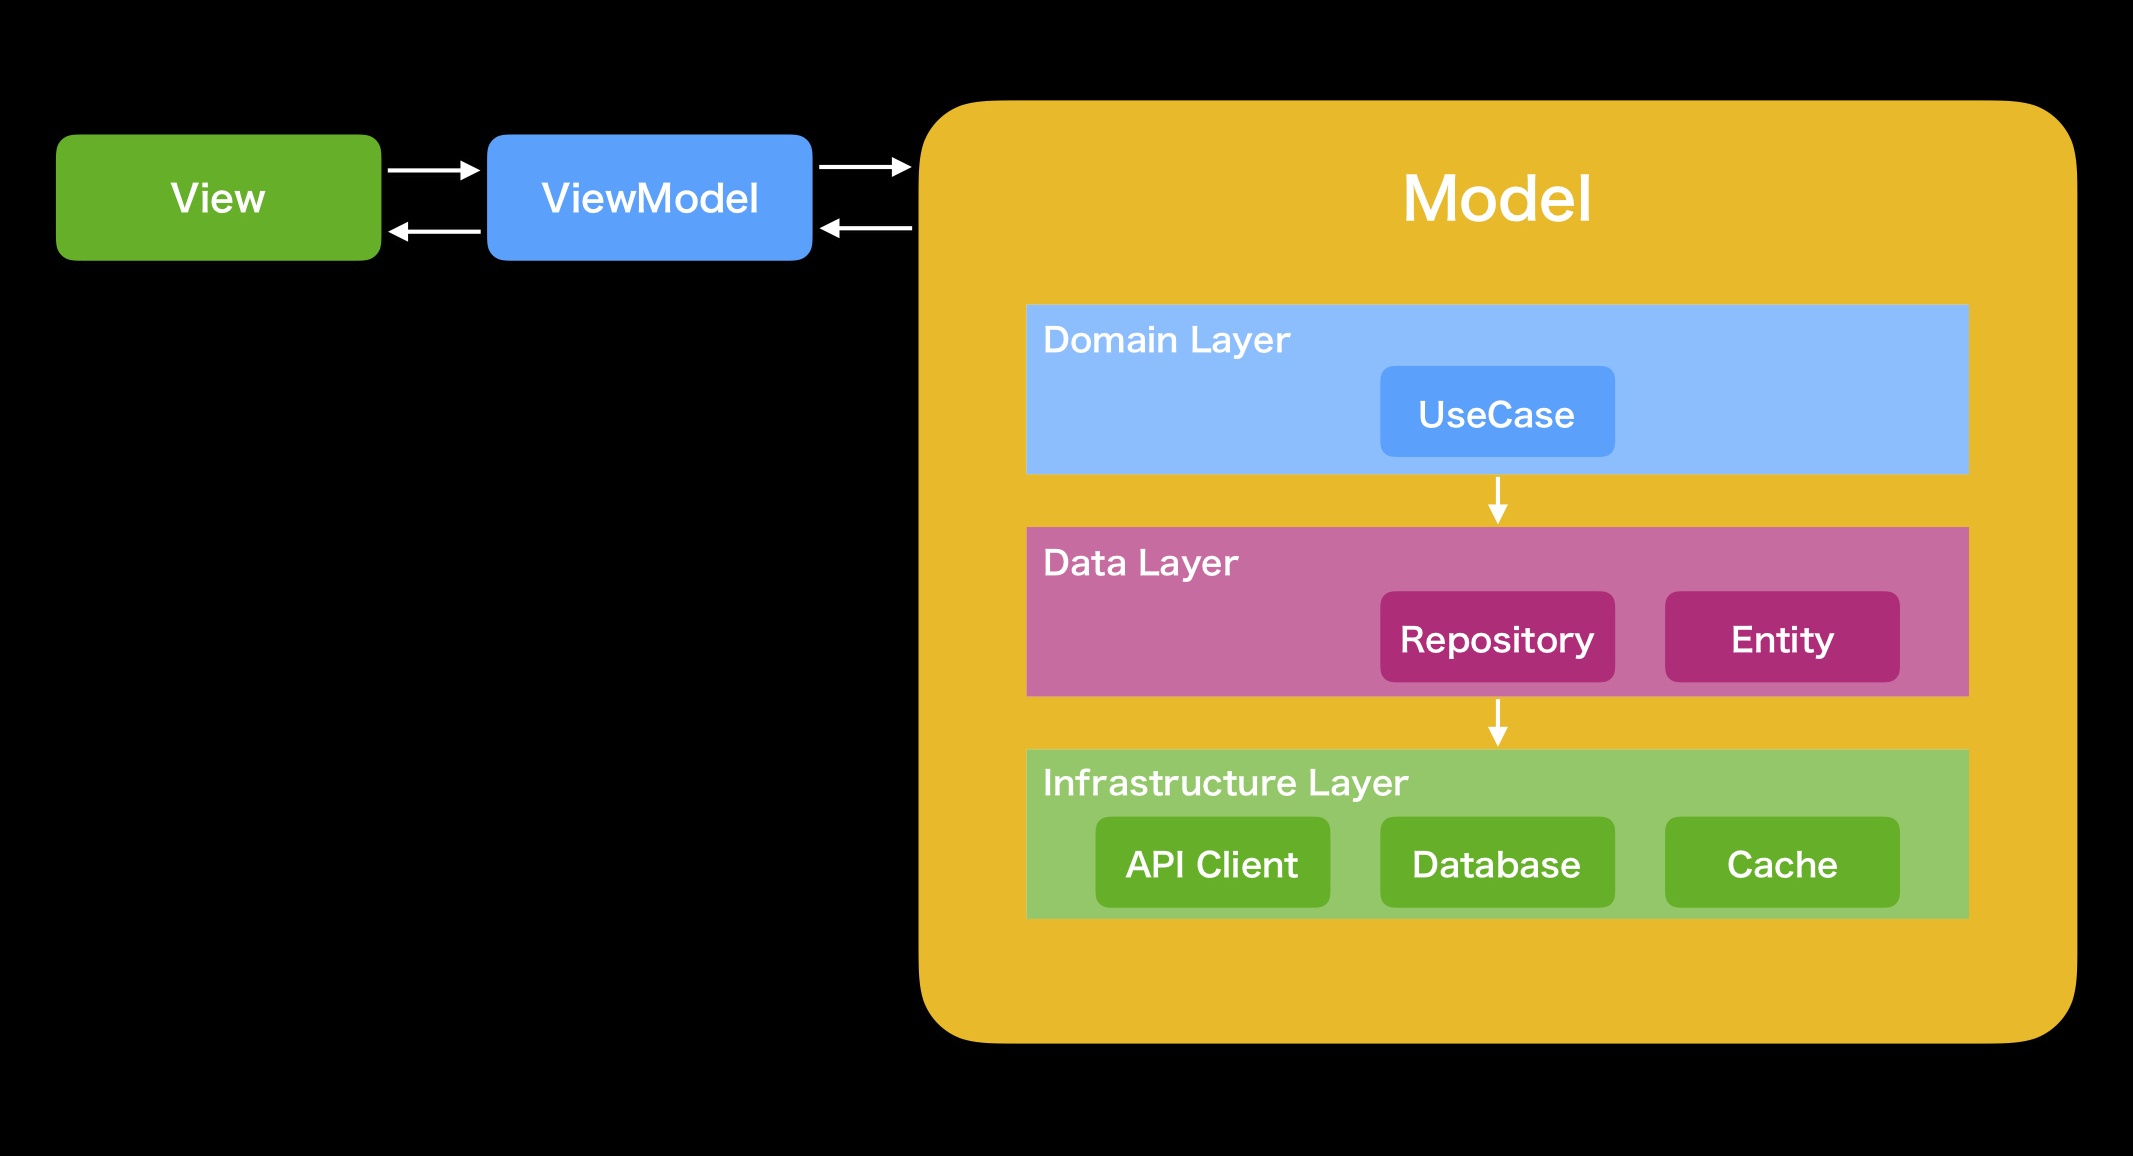 MVVM + Layered Architecture